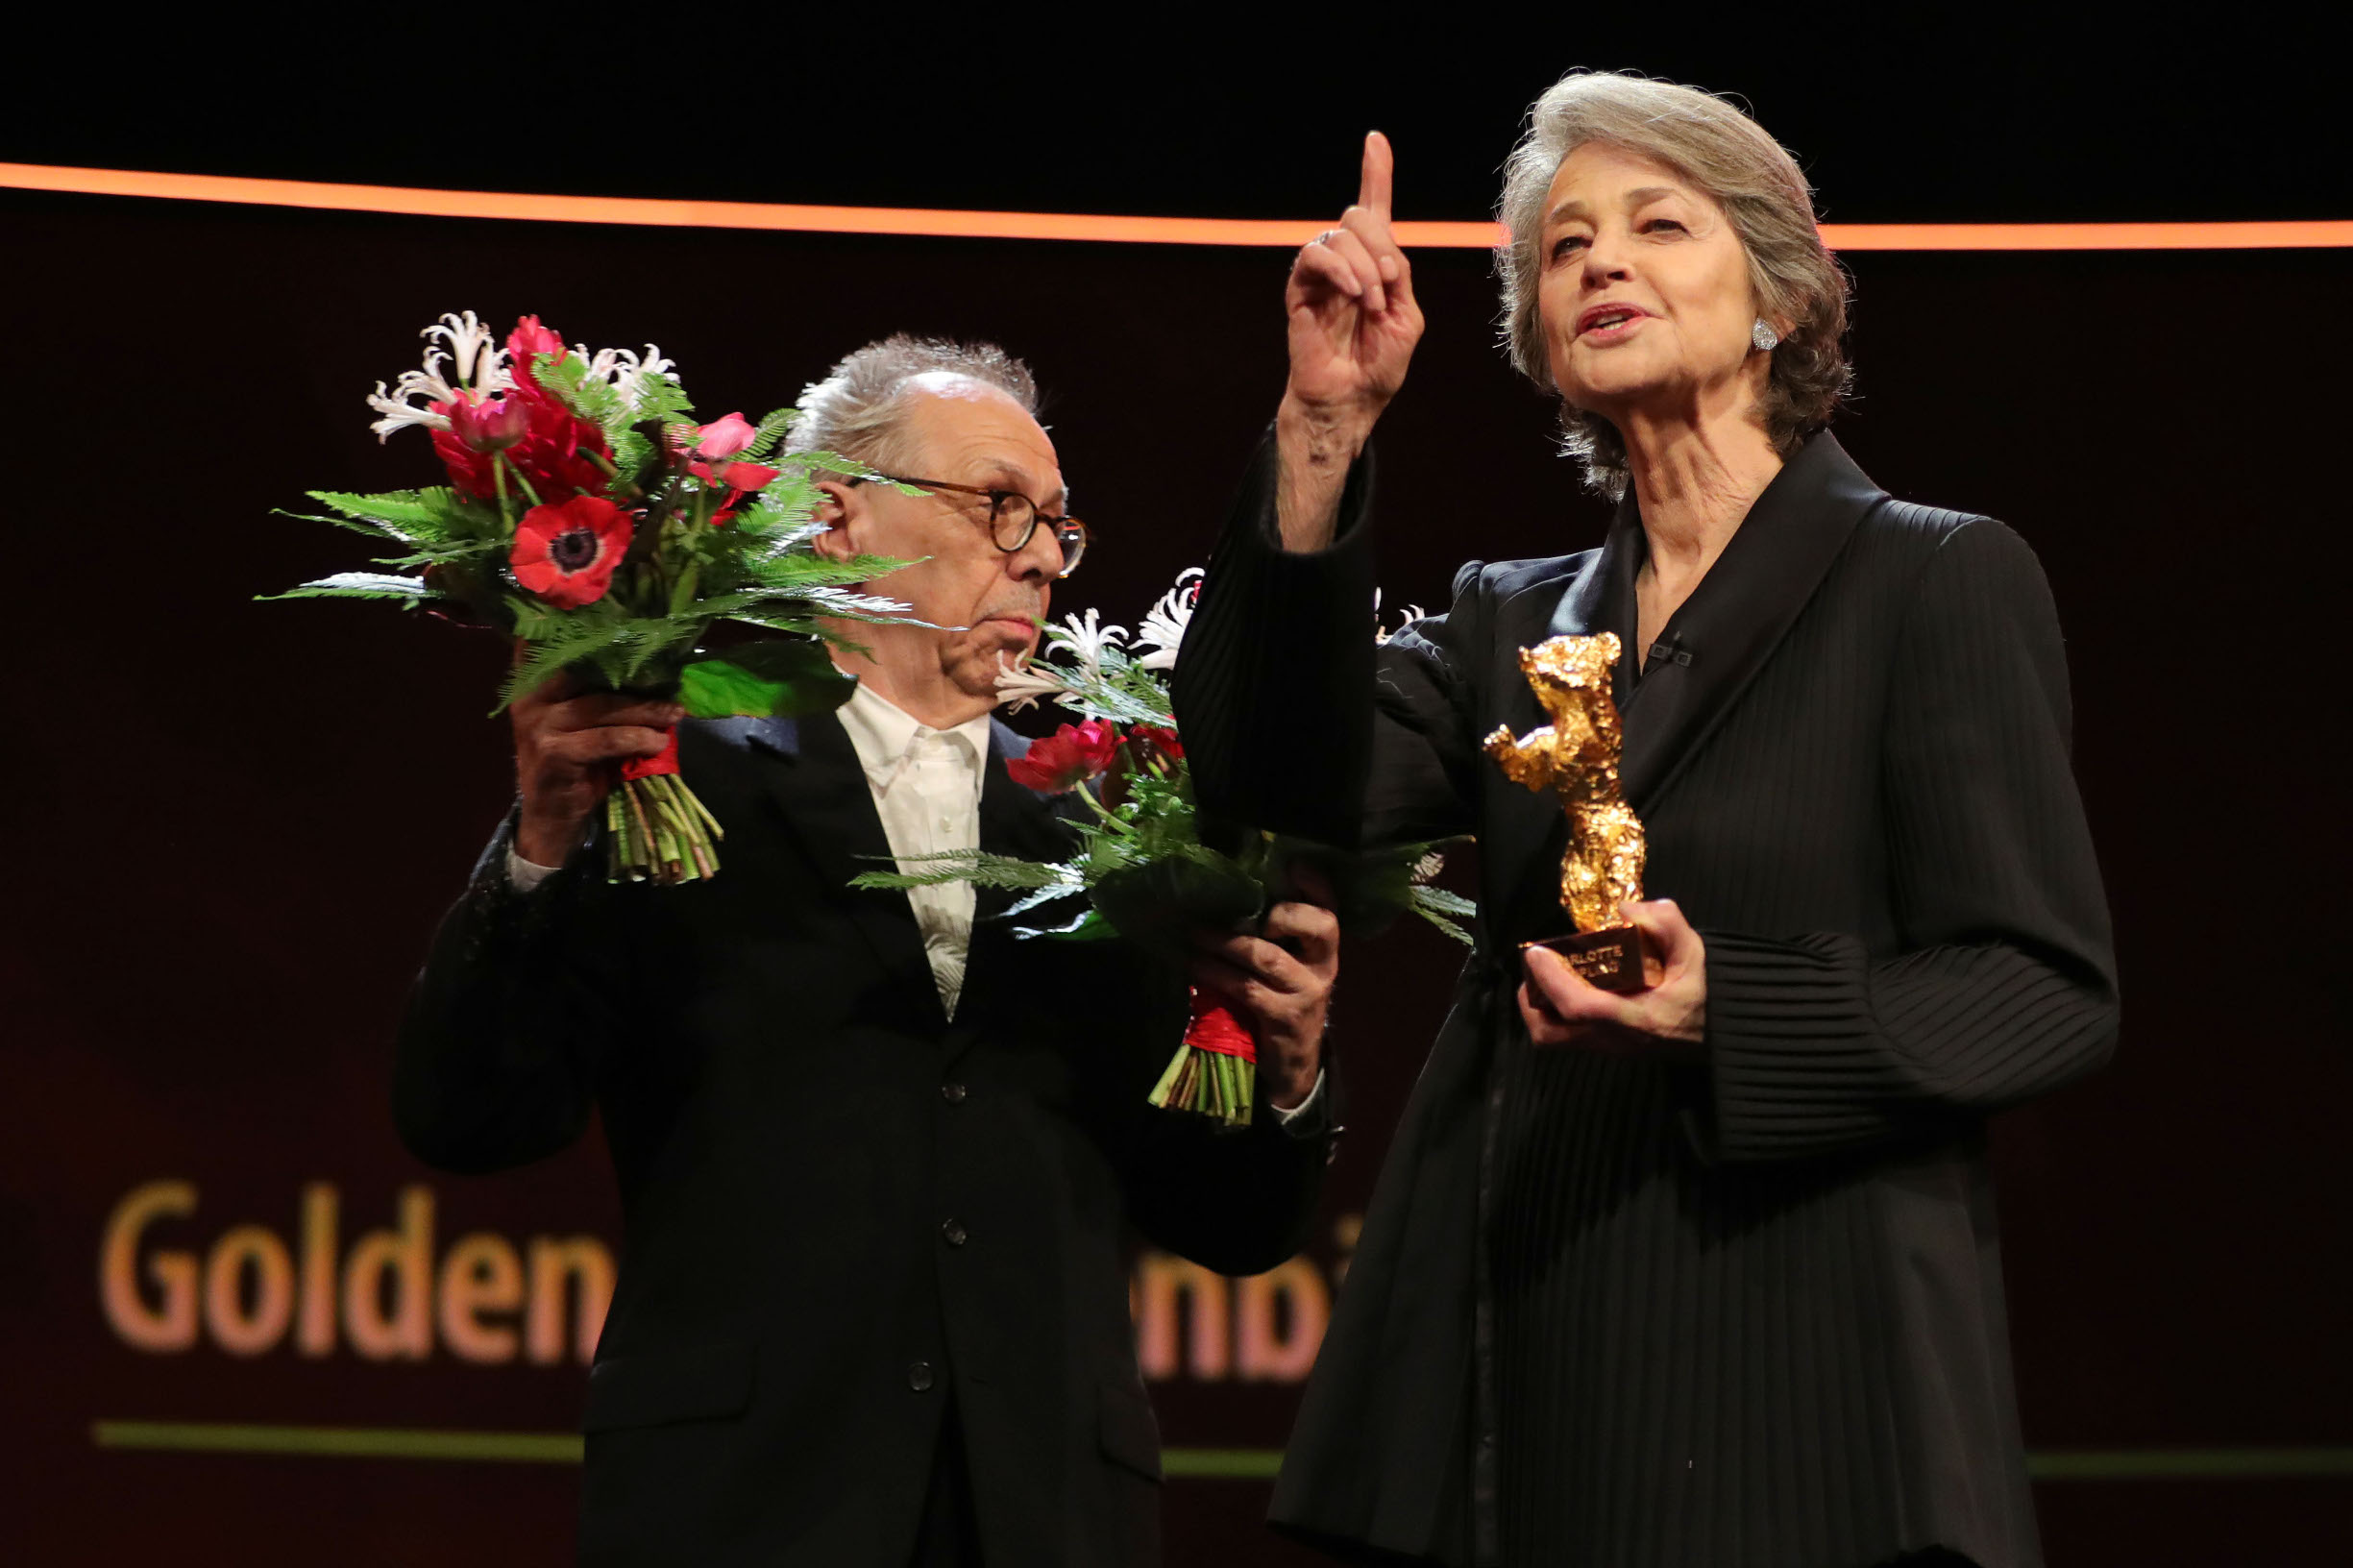 BERLIN, GERMANY - FEBRUARY 14: Charlotte Rampling (R) receives the Golden Bear from Festival director Dieter Kosslick (L) on stage at the Homage Charlotte Rampling Honorary Golden Bear award ceremony during the 69th Berlinale International Film Festival Berlin at Berlinale Palace on February 14, 2019 in Berlin, Germany. Rampling is this years recipient of the Honorary Golden Bear Award of the Berlinale. (Photo by Andreas Rentz/Getty Images)